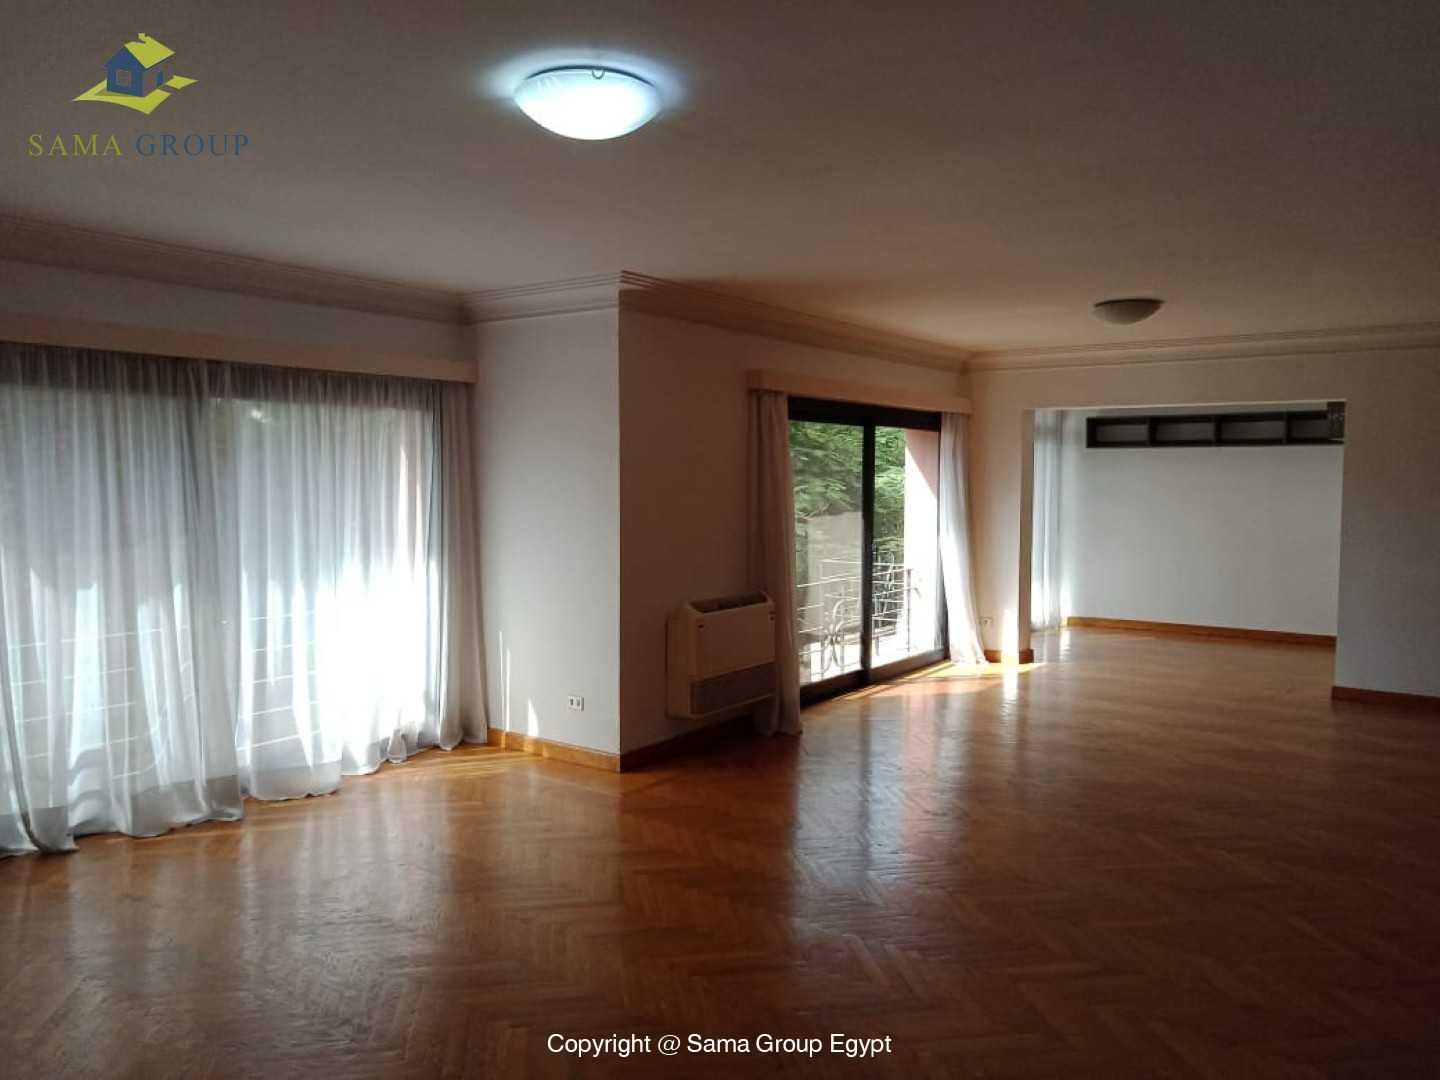 Semi Furnished Apartment For Rent In Maadi Sarayat,Semi furnished,Apartment NO #1